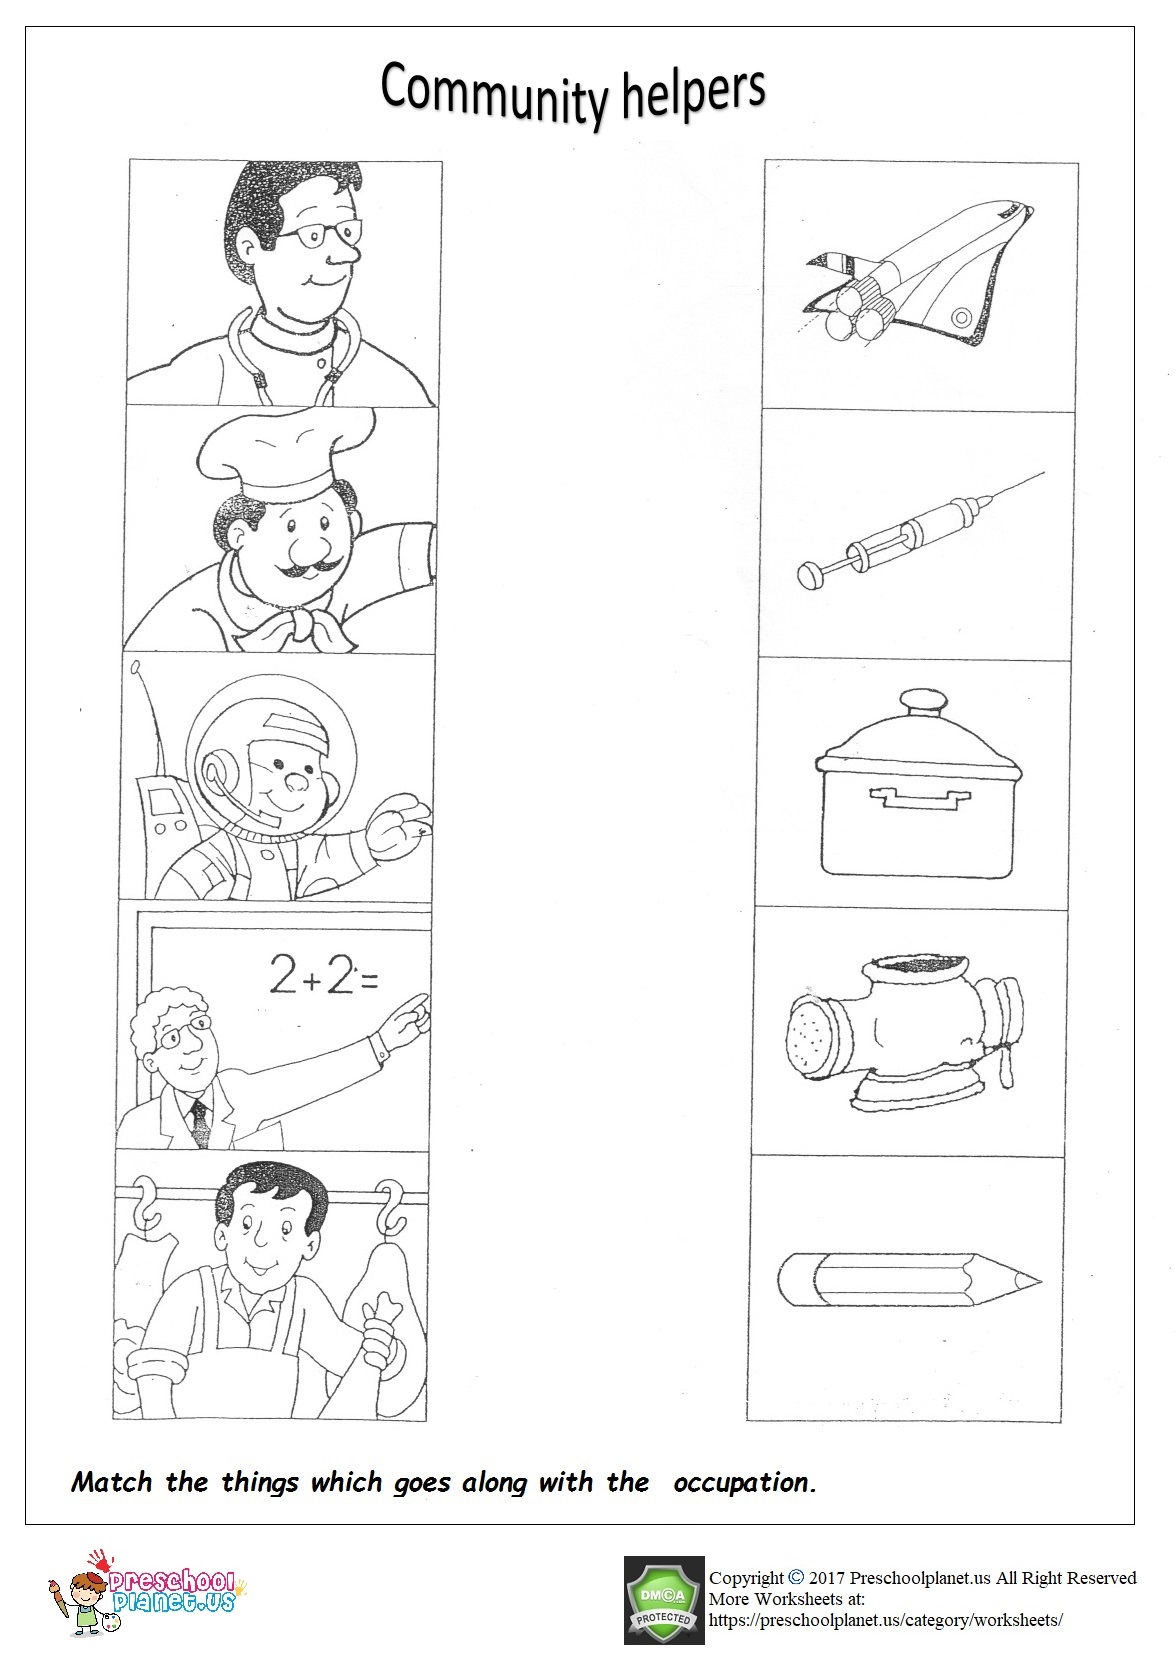 Worksheet Occupation Preschool